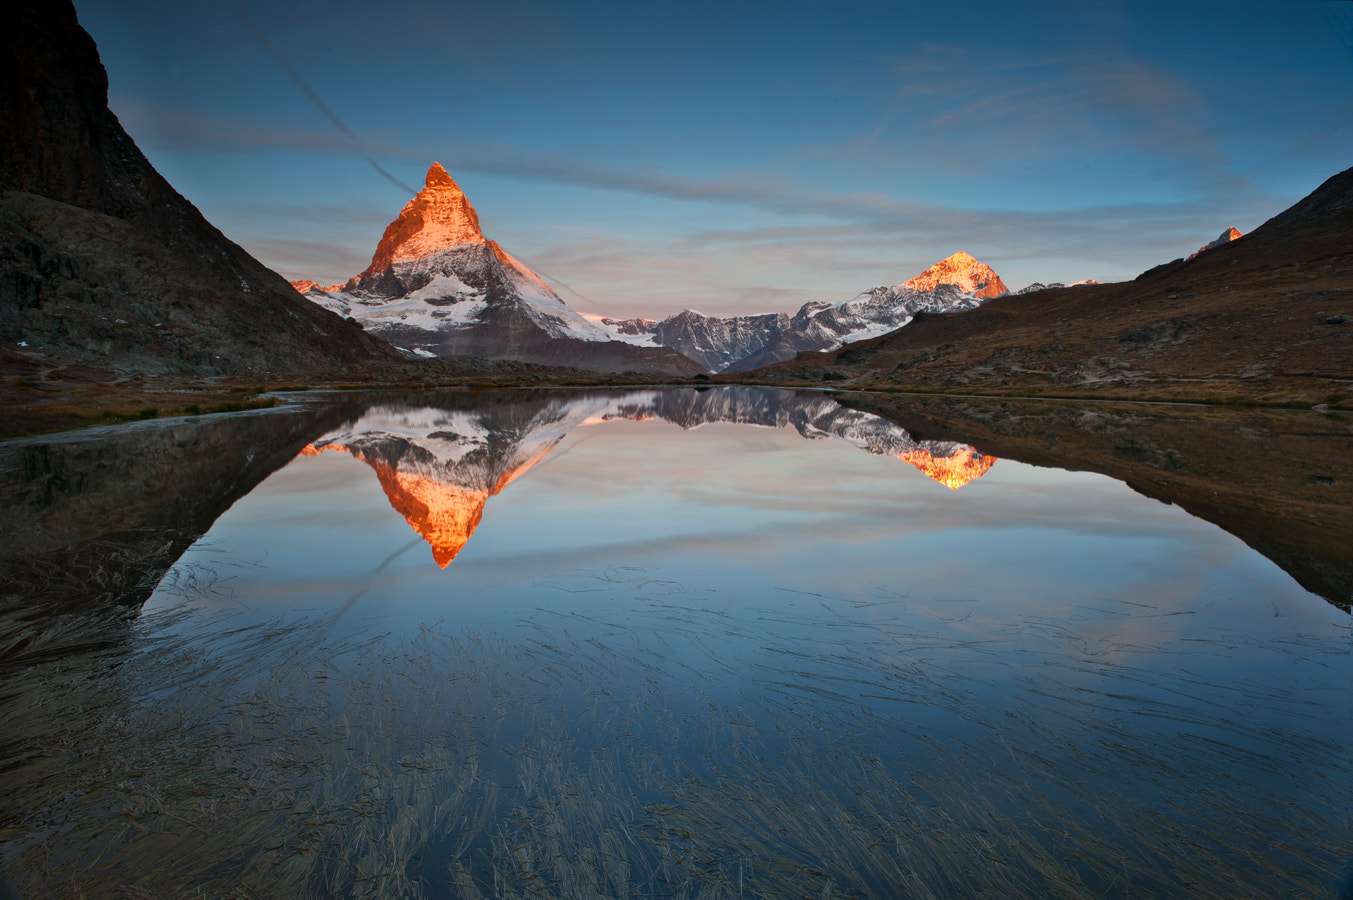 Photograph The 'red' Matterhorn by bodhisattva chattopadhyay on 500px